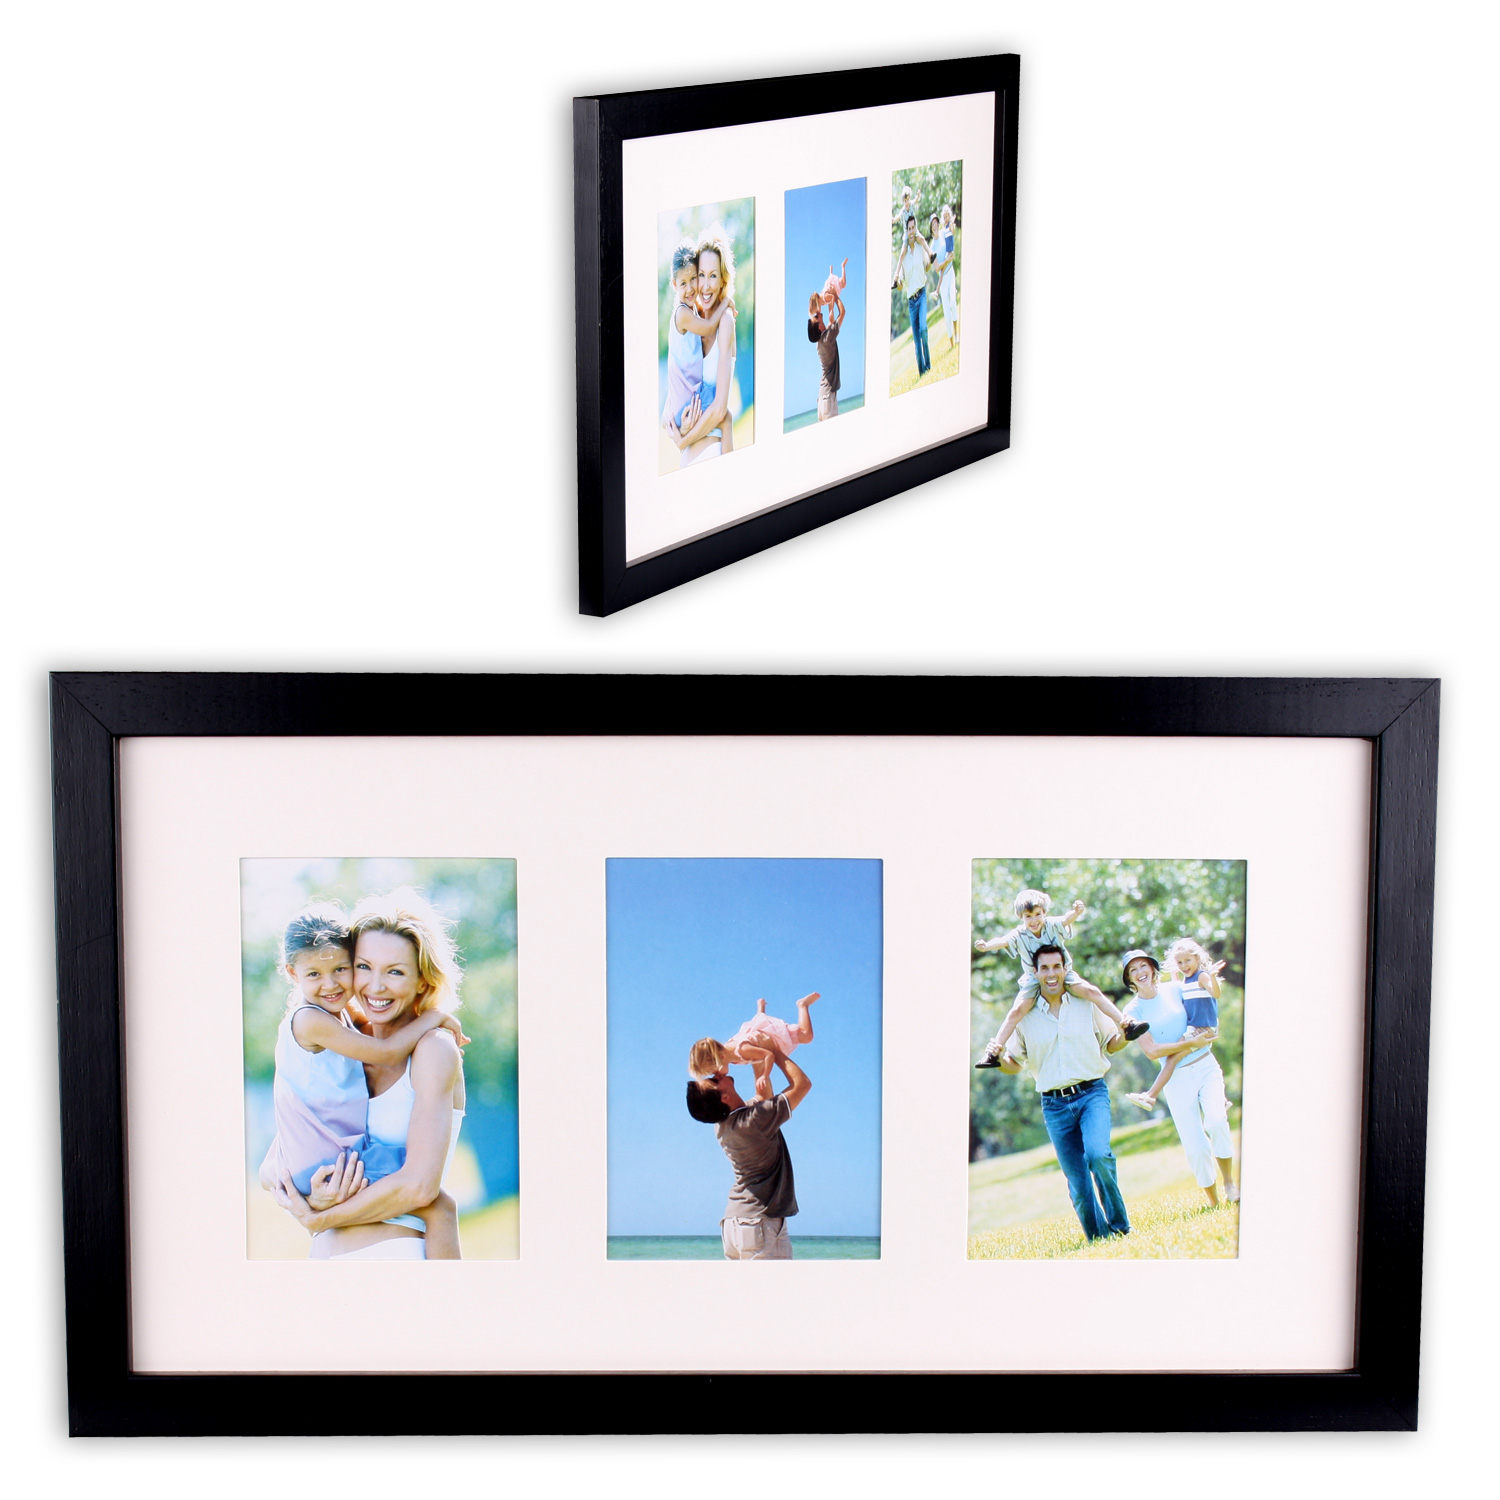 Picture Frame Photo Gallery Wood 9 x 13 + 3 7/8x5 7/8in | eBay